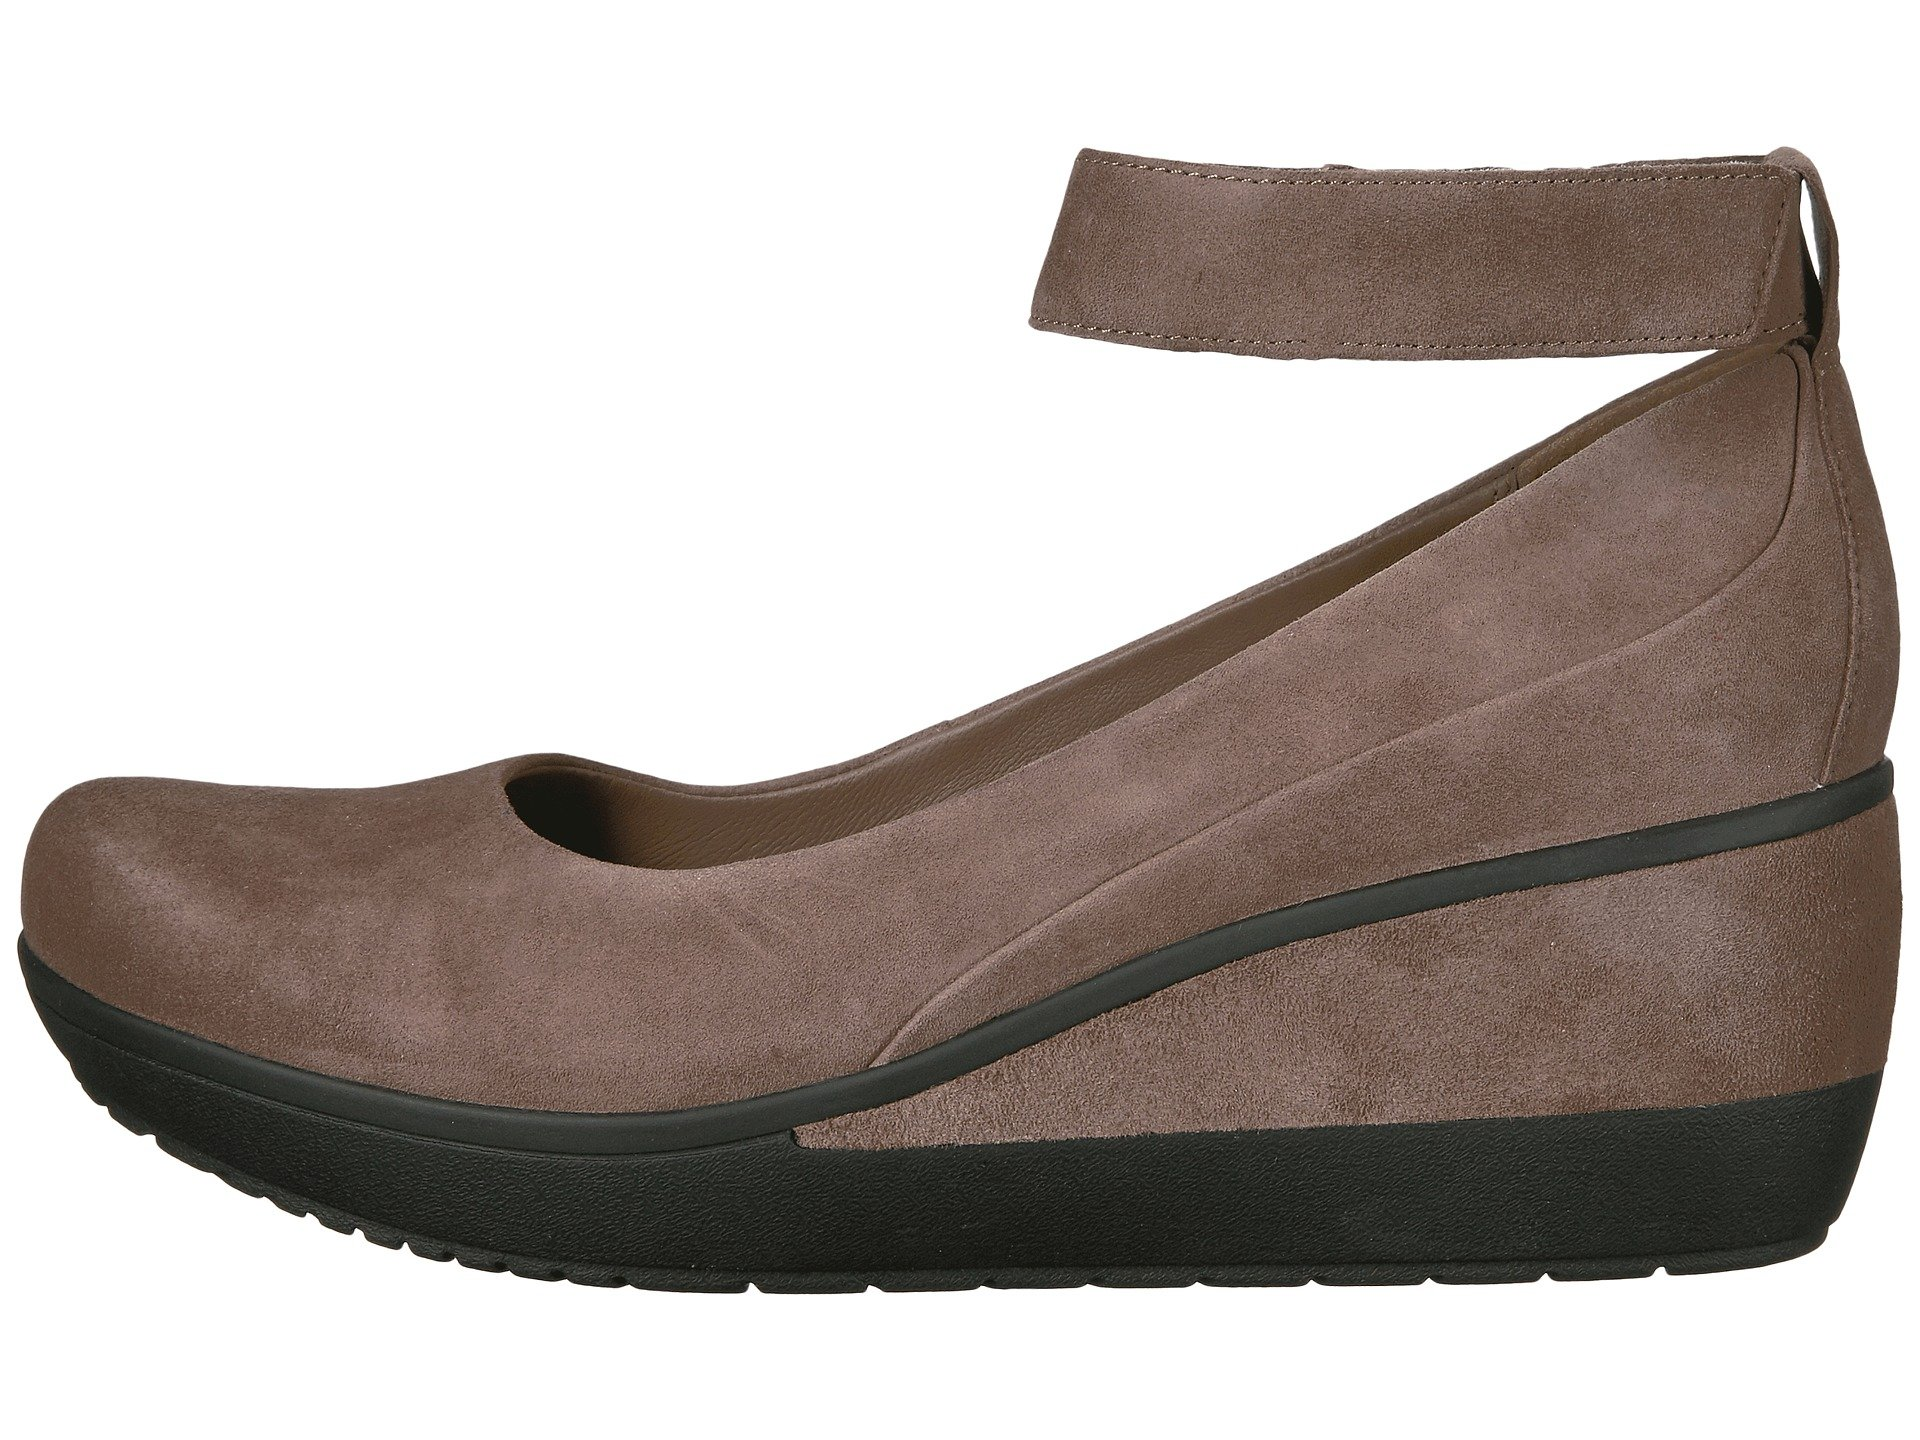 Wynnmere Fox Shoes In Aubergine Size